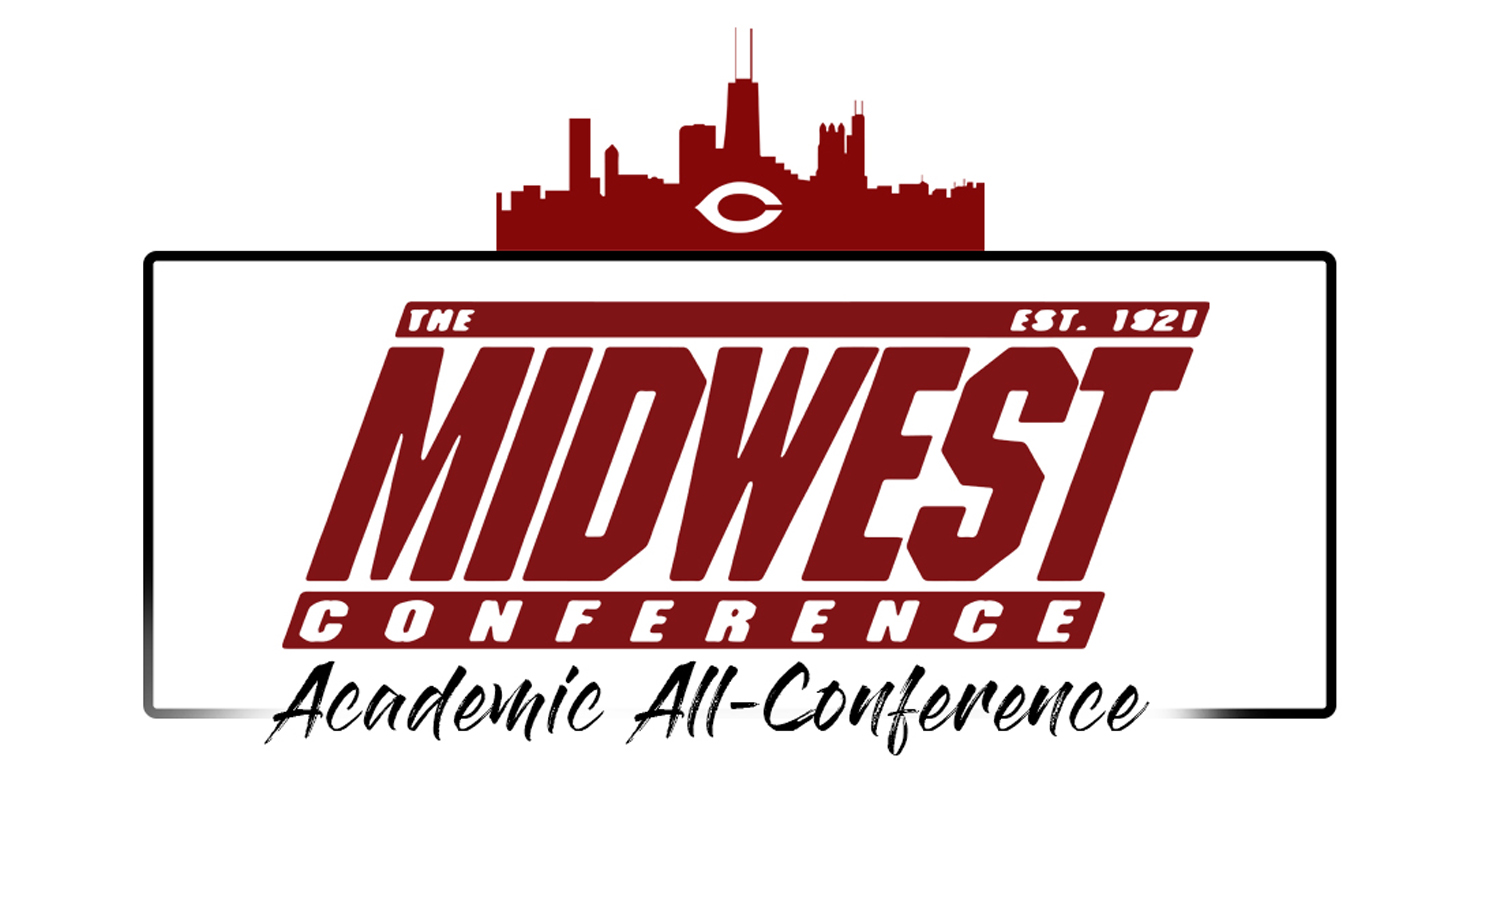 UChicago Football and Baseball Combine for 101 MWC Academic All-Conference Honors